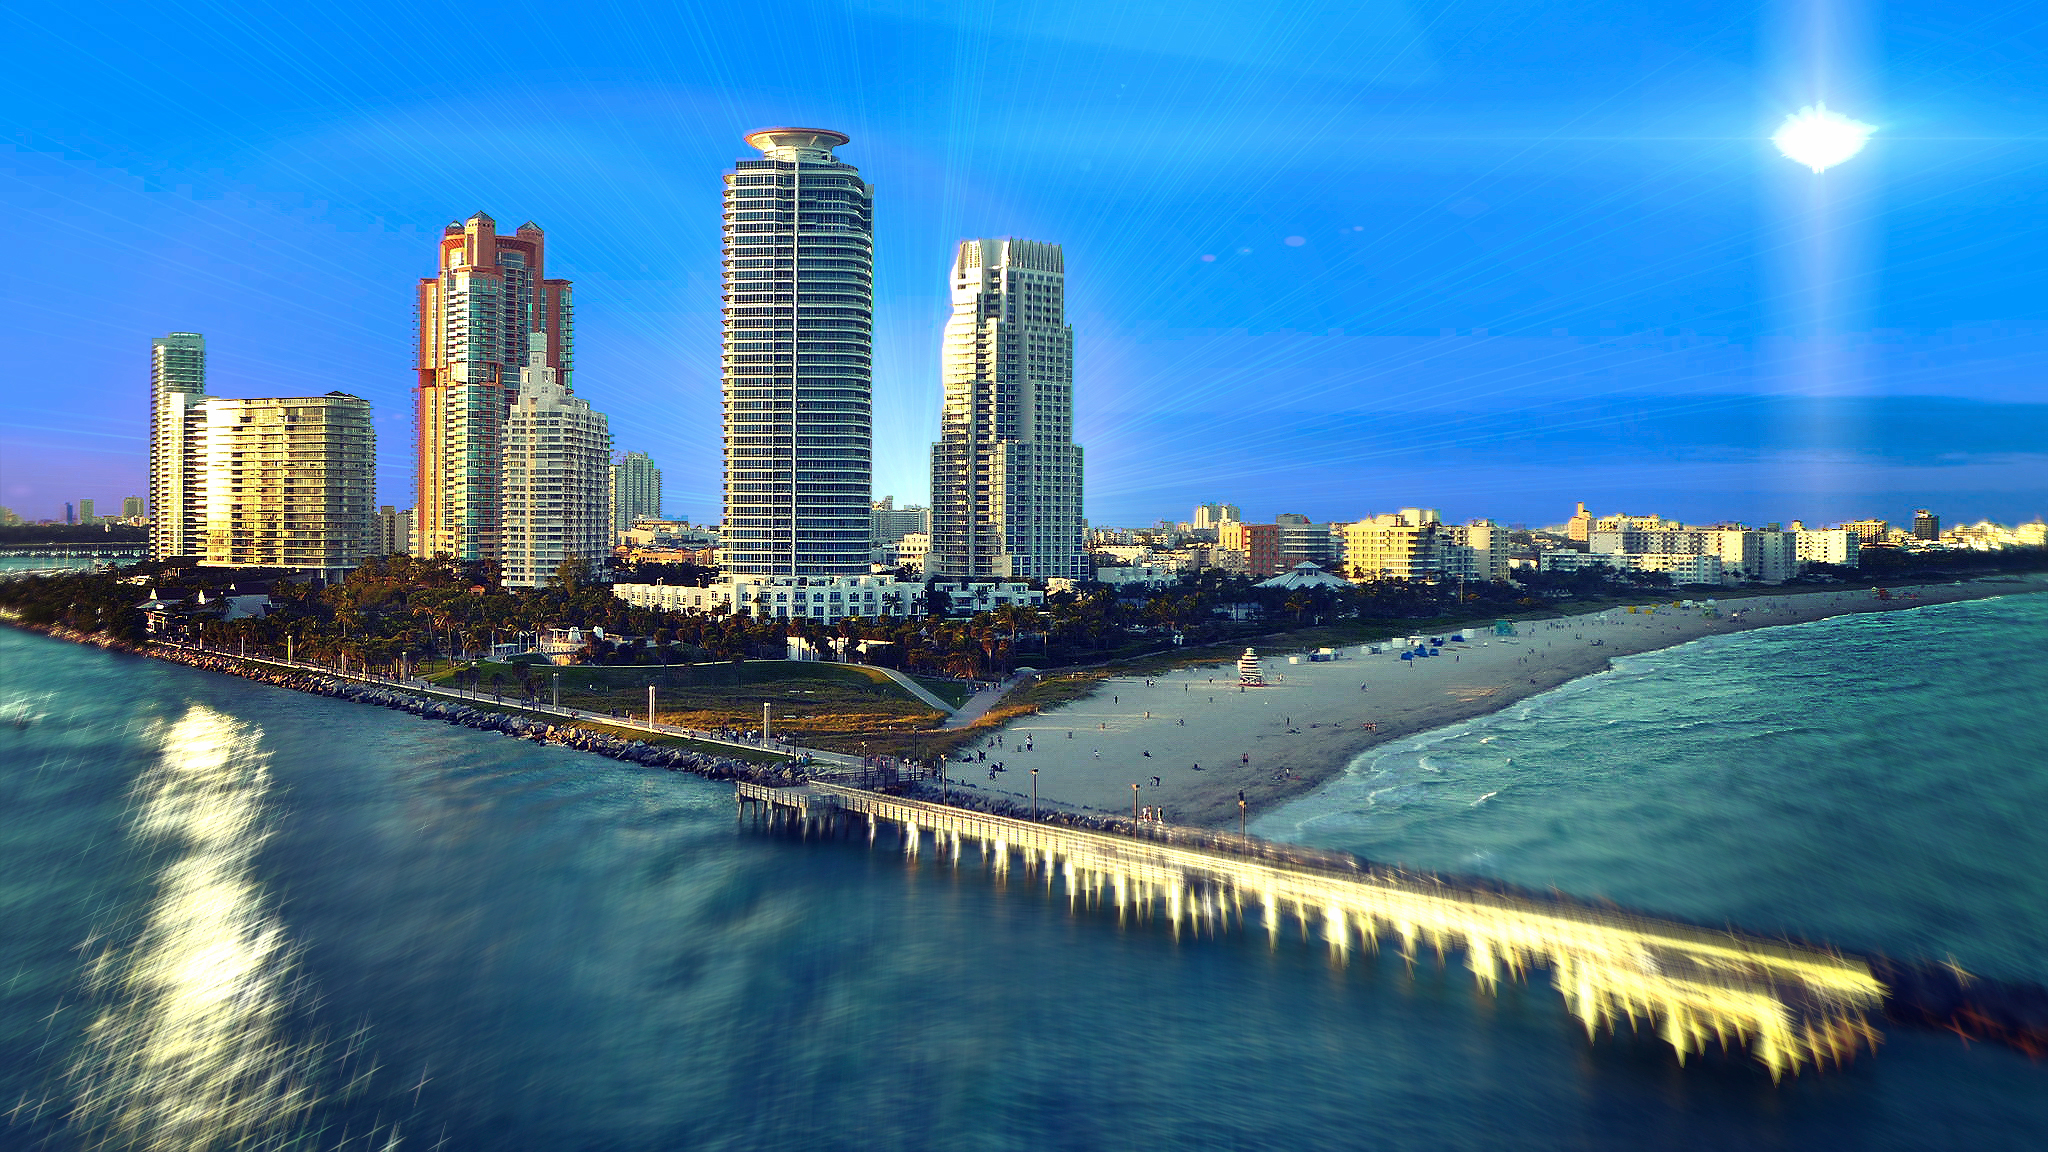 Los Angeles Wallpaper Iphone 6 Plus Miami Hd Wallpaper Background Image 2048x1152 Id